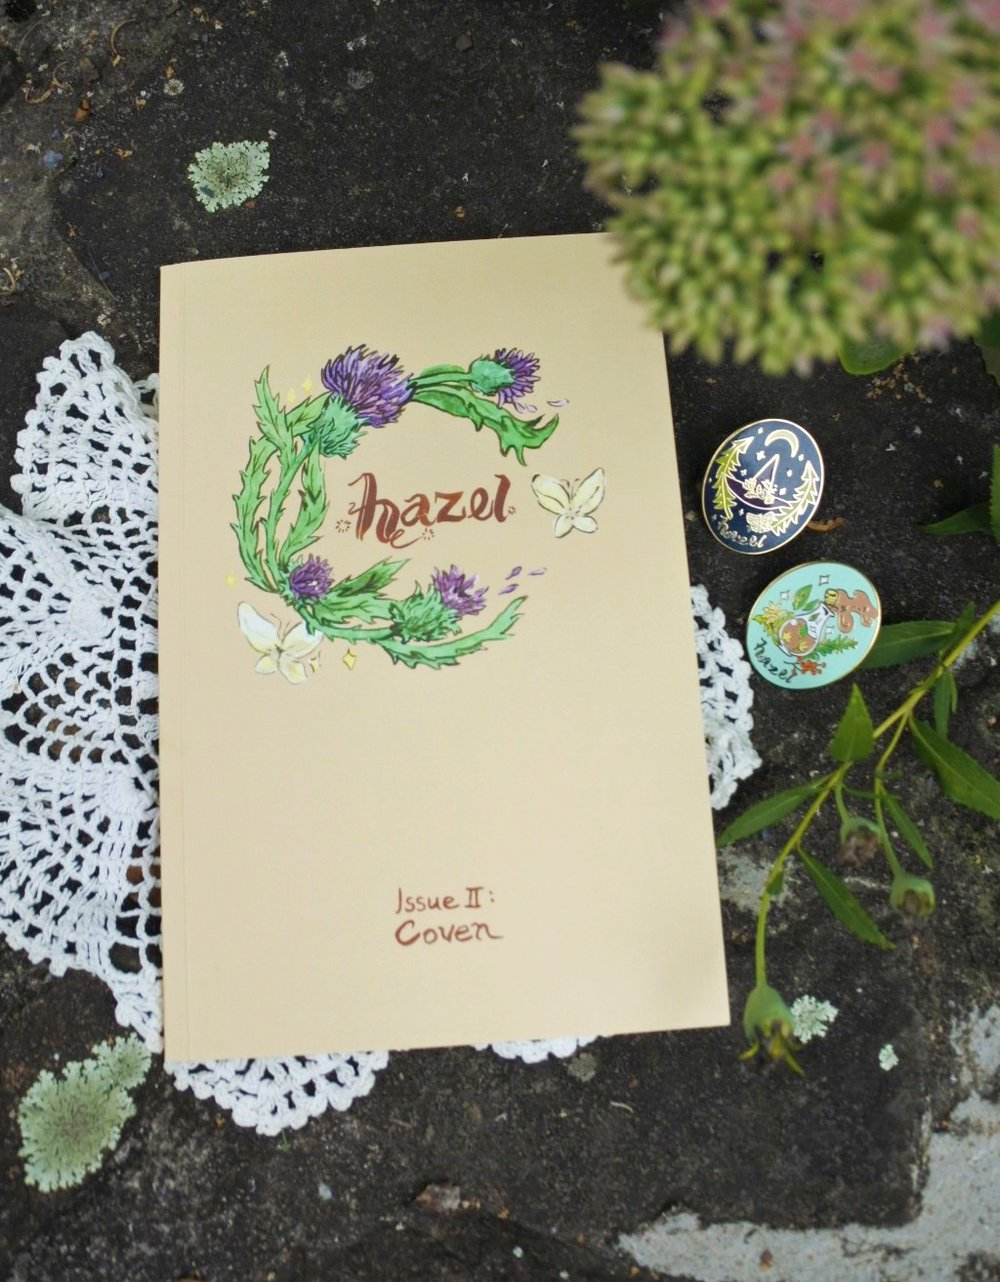 Hazel Issue II